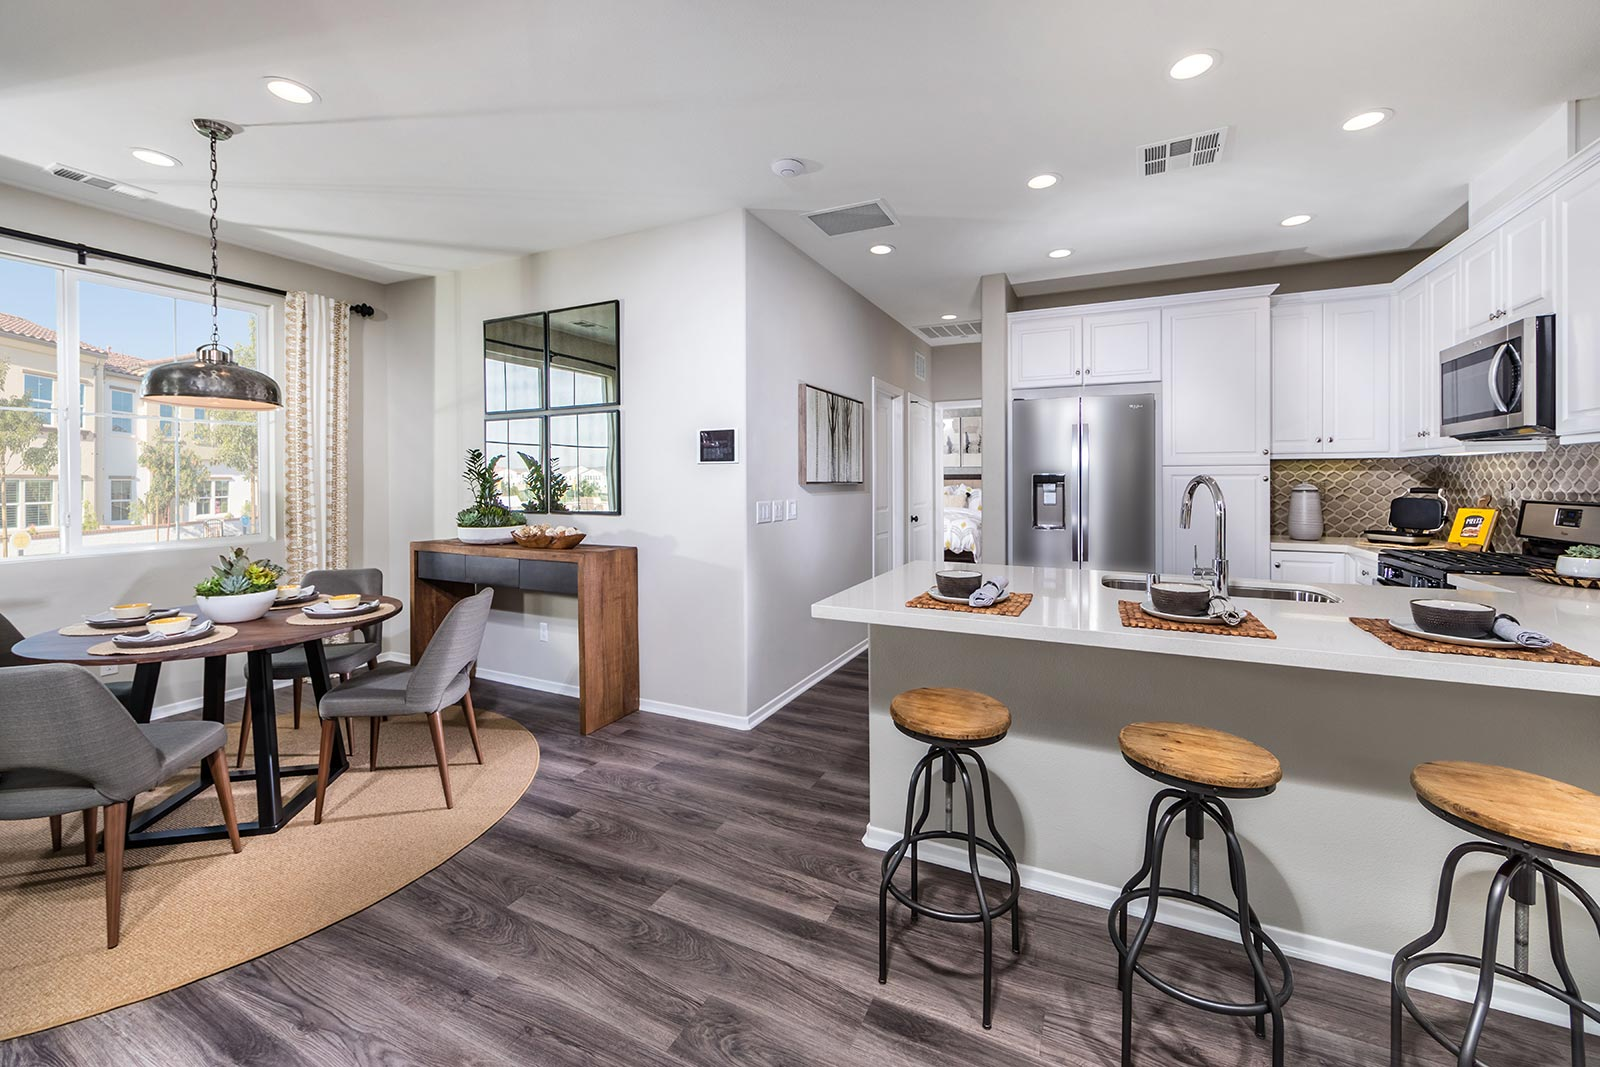 Plan 1 Kitchen | Solstice at New Haven in Ontario Ranch, CA | Brookfield Residential